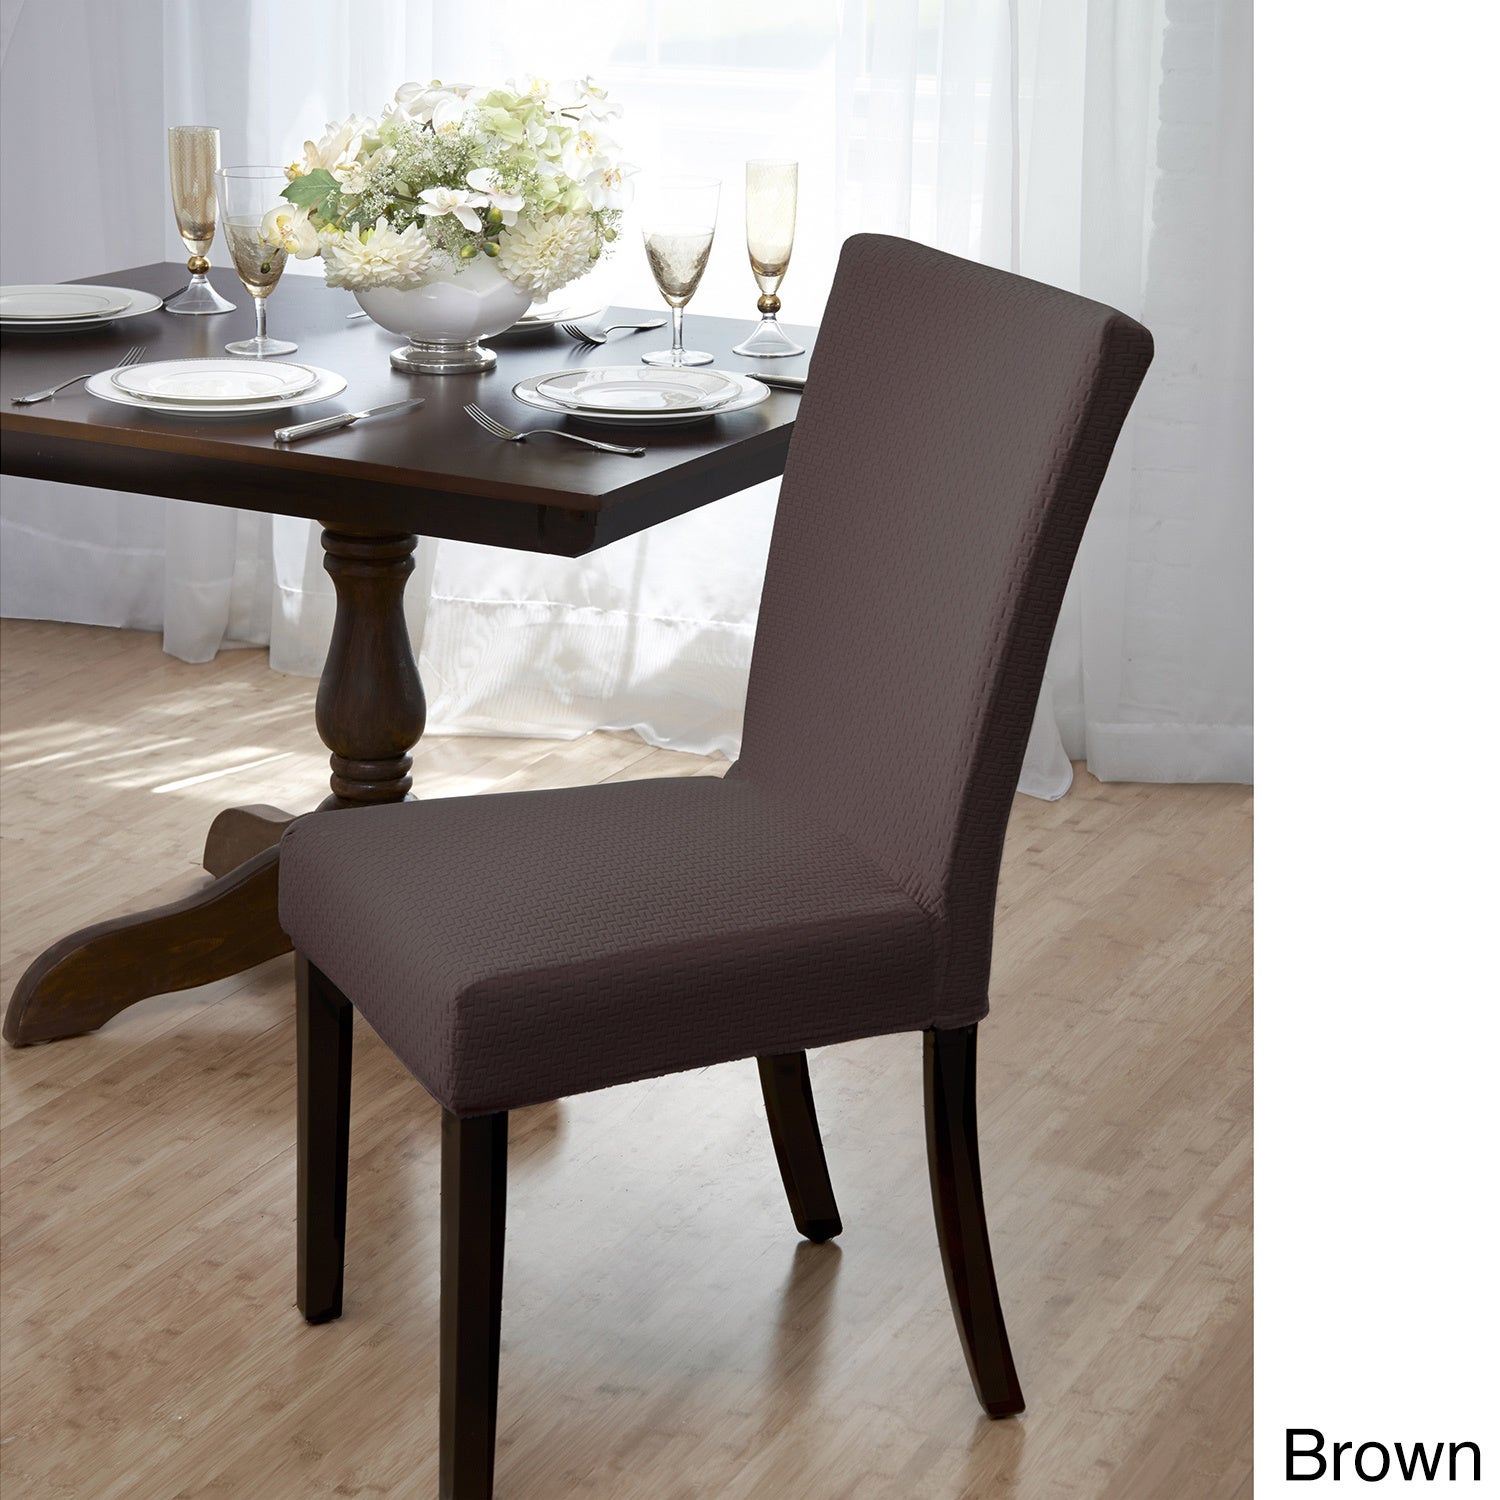 Dining Room Chair Covers Brown shop sanctuary subway knit jacquard dining room chair cover - free